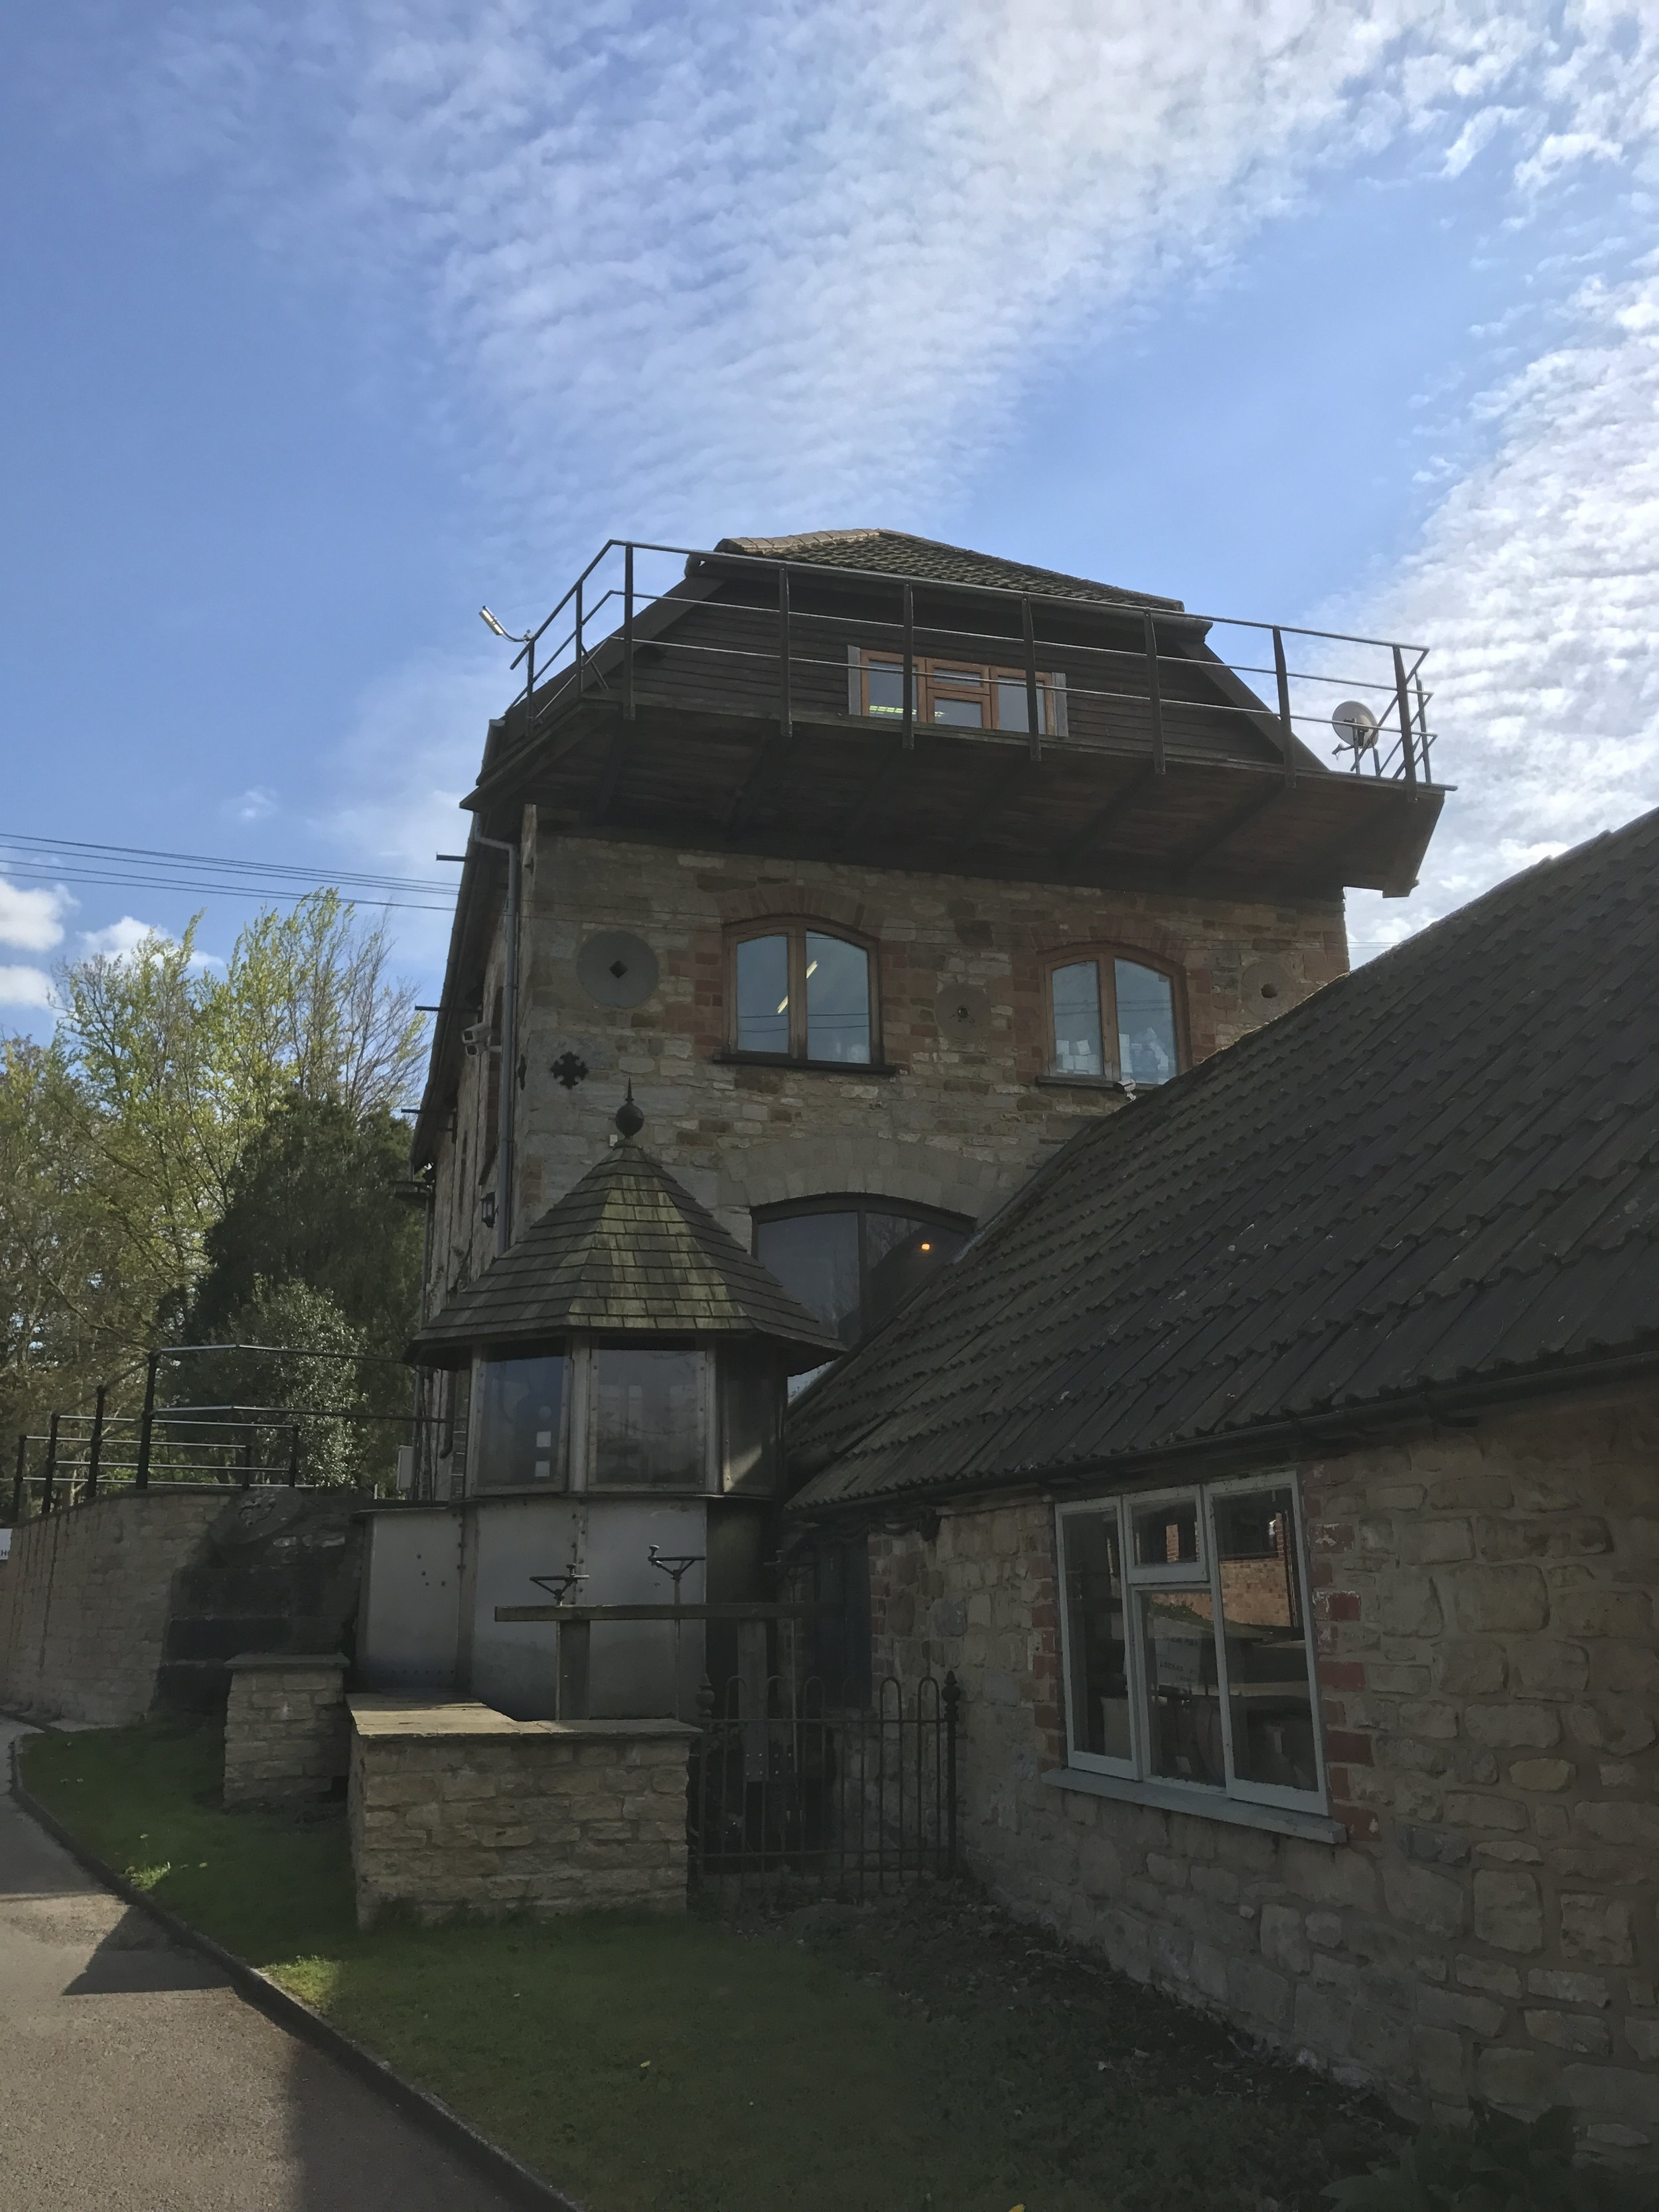 View of the end of house with balcony